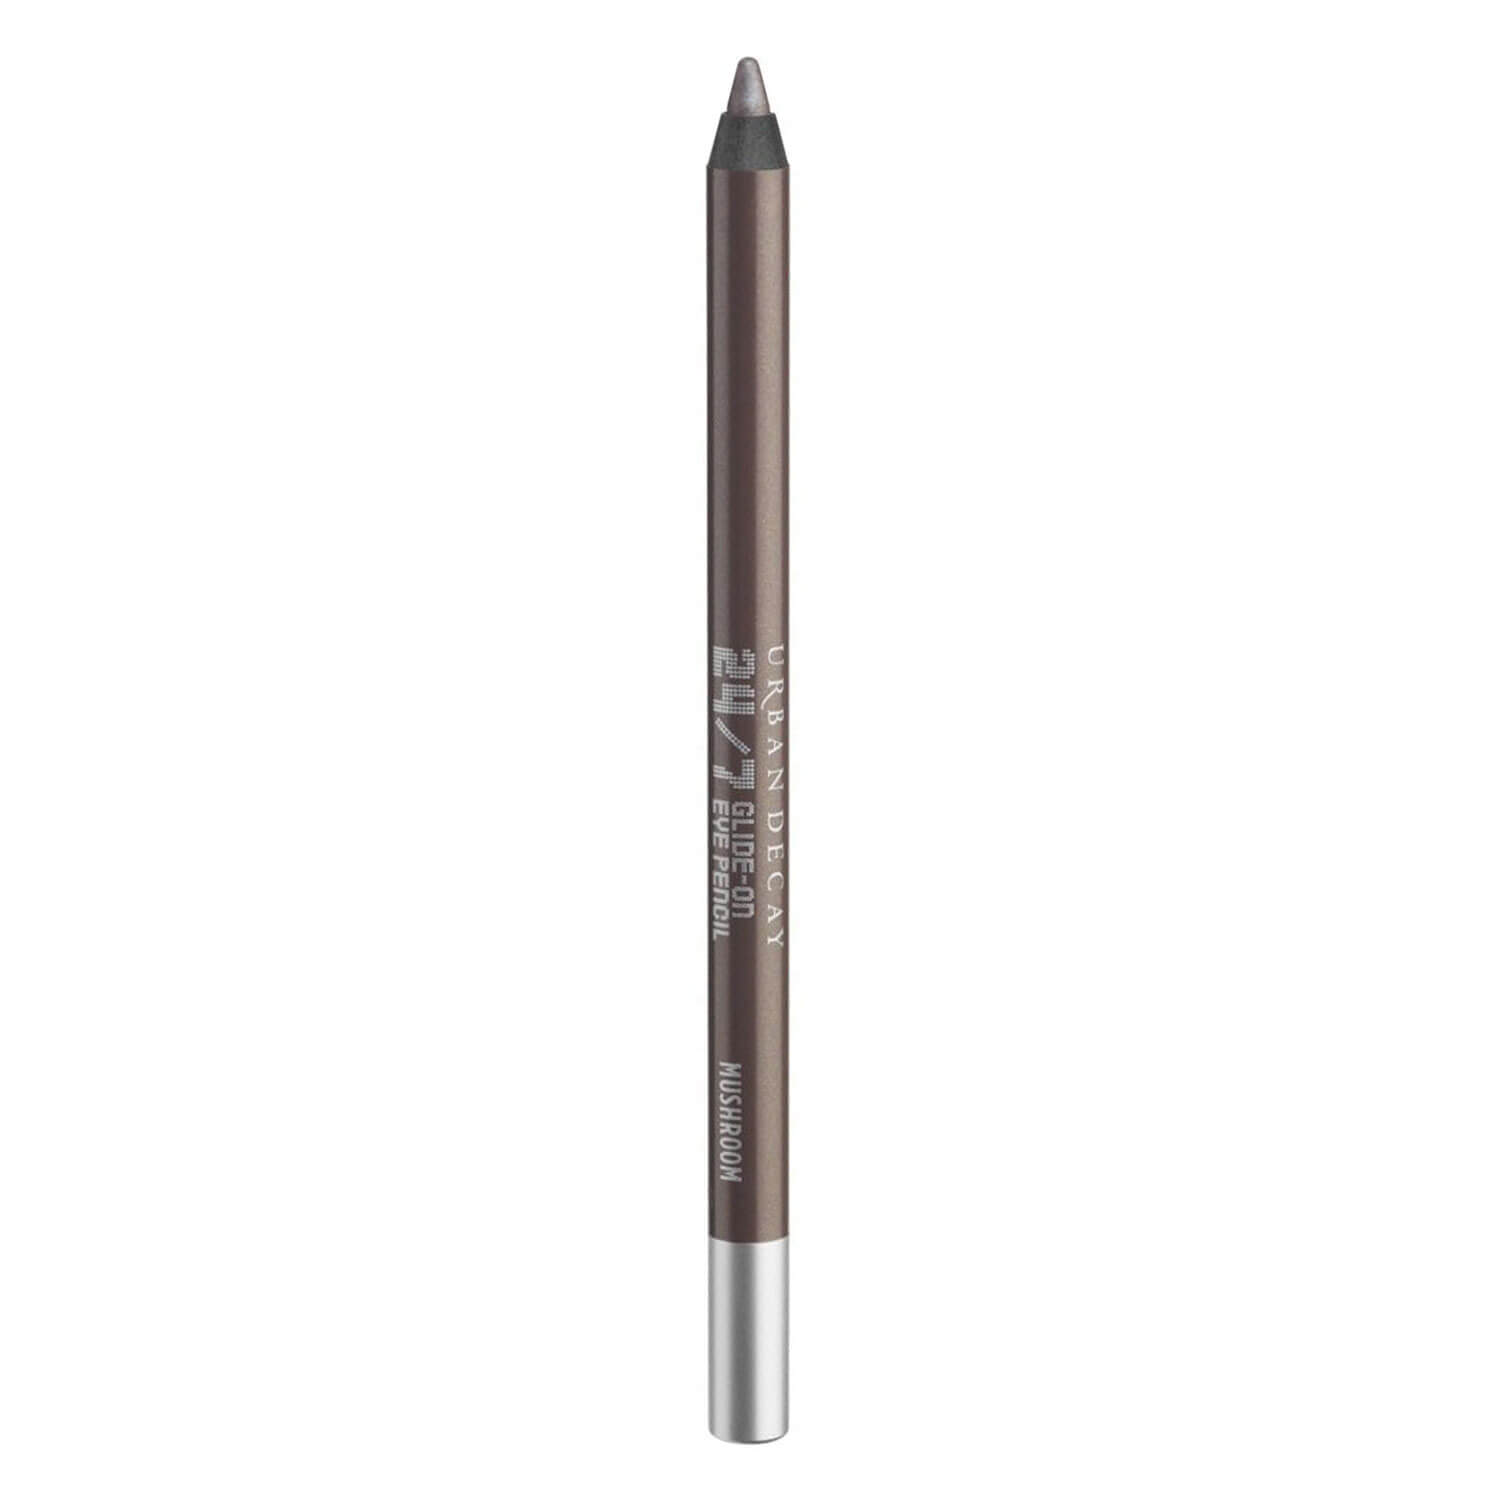 24/7 Glide-On - Eye Pencil Mushroom